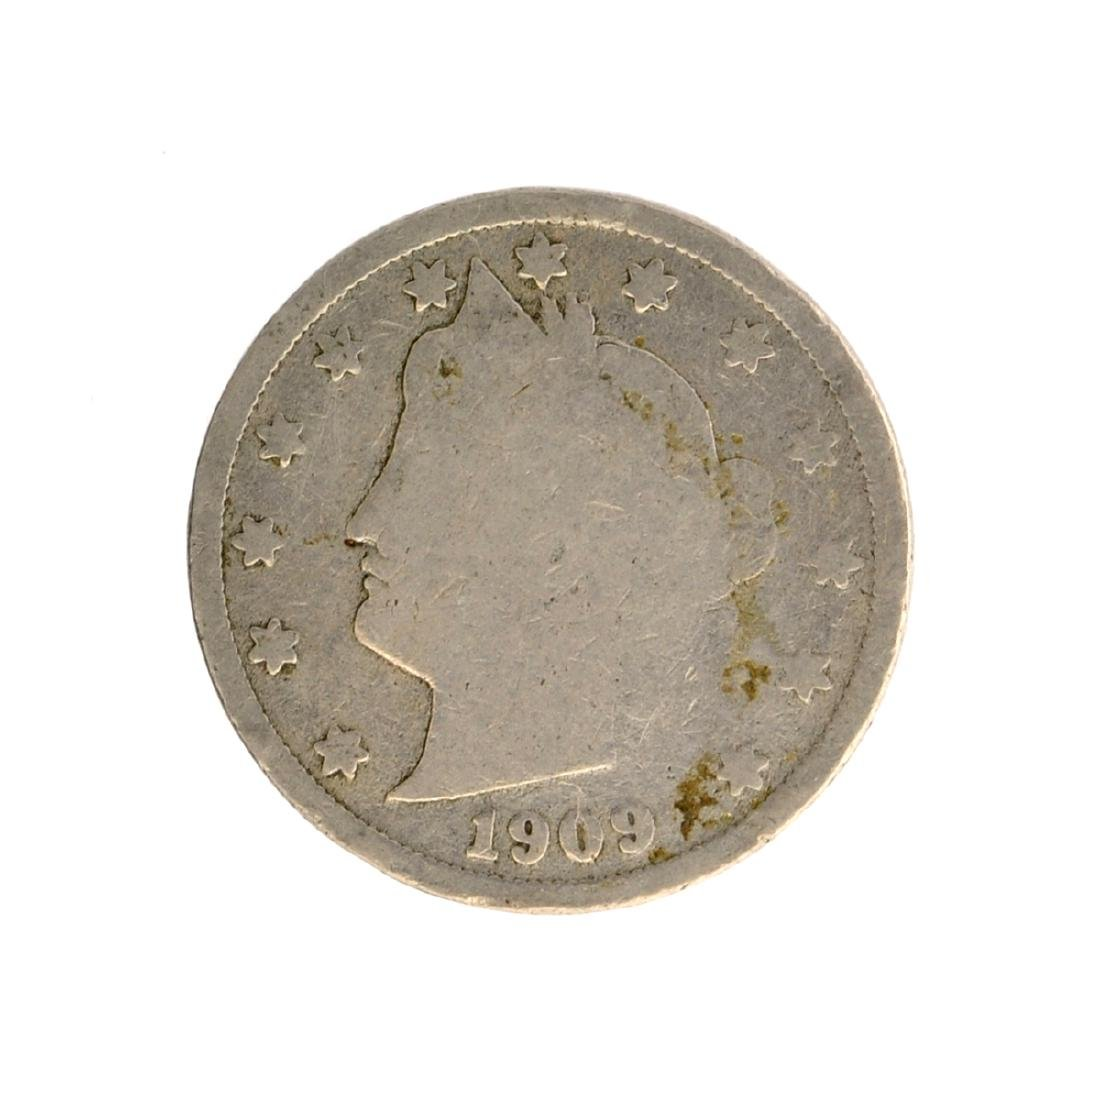 1909 V Nickel Five-Cent Piece Coin